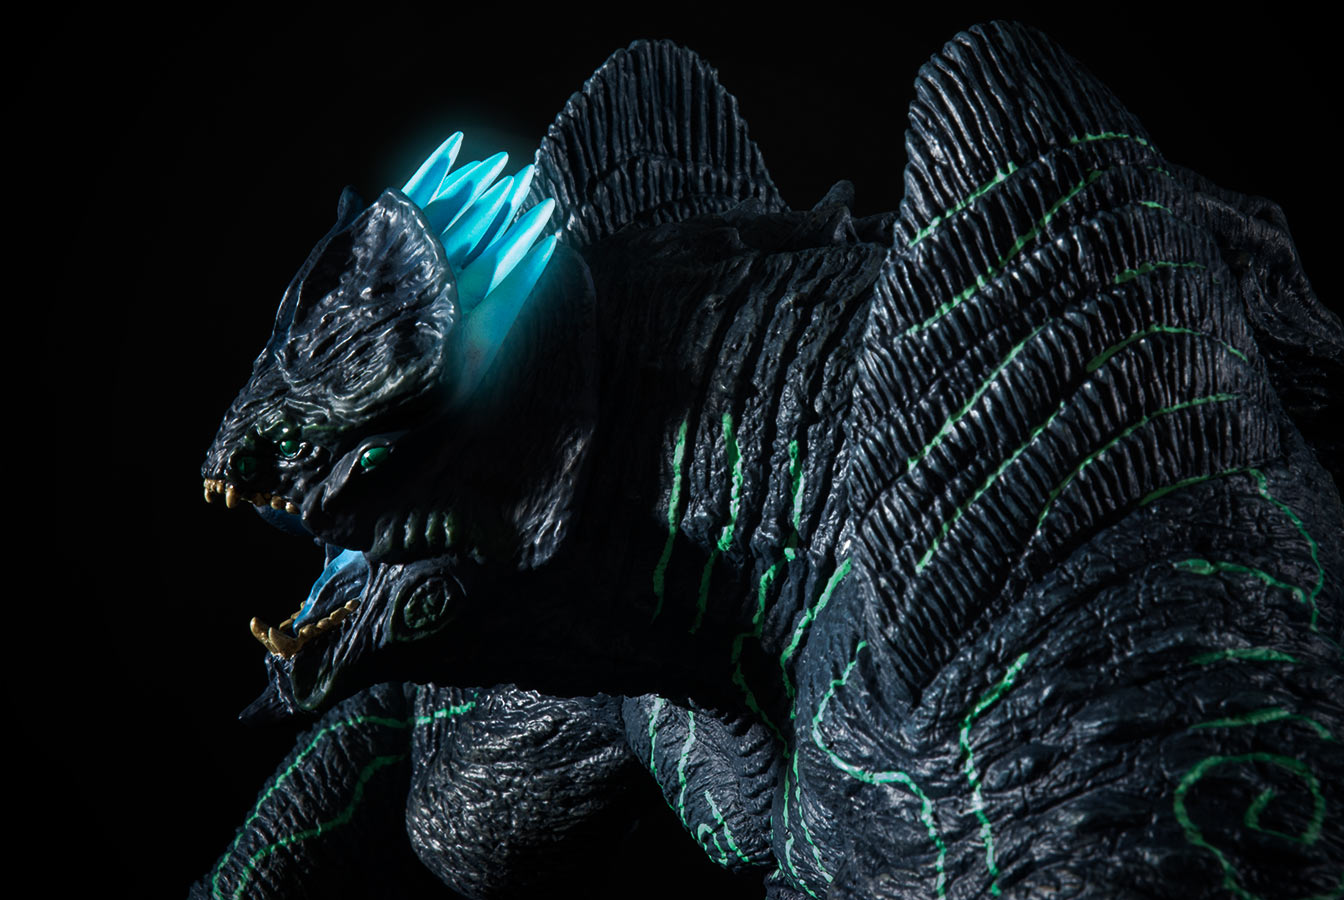 Photoshopped image of the X-Plus Large Monster Series Leatherback.